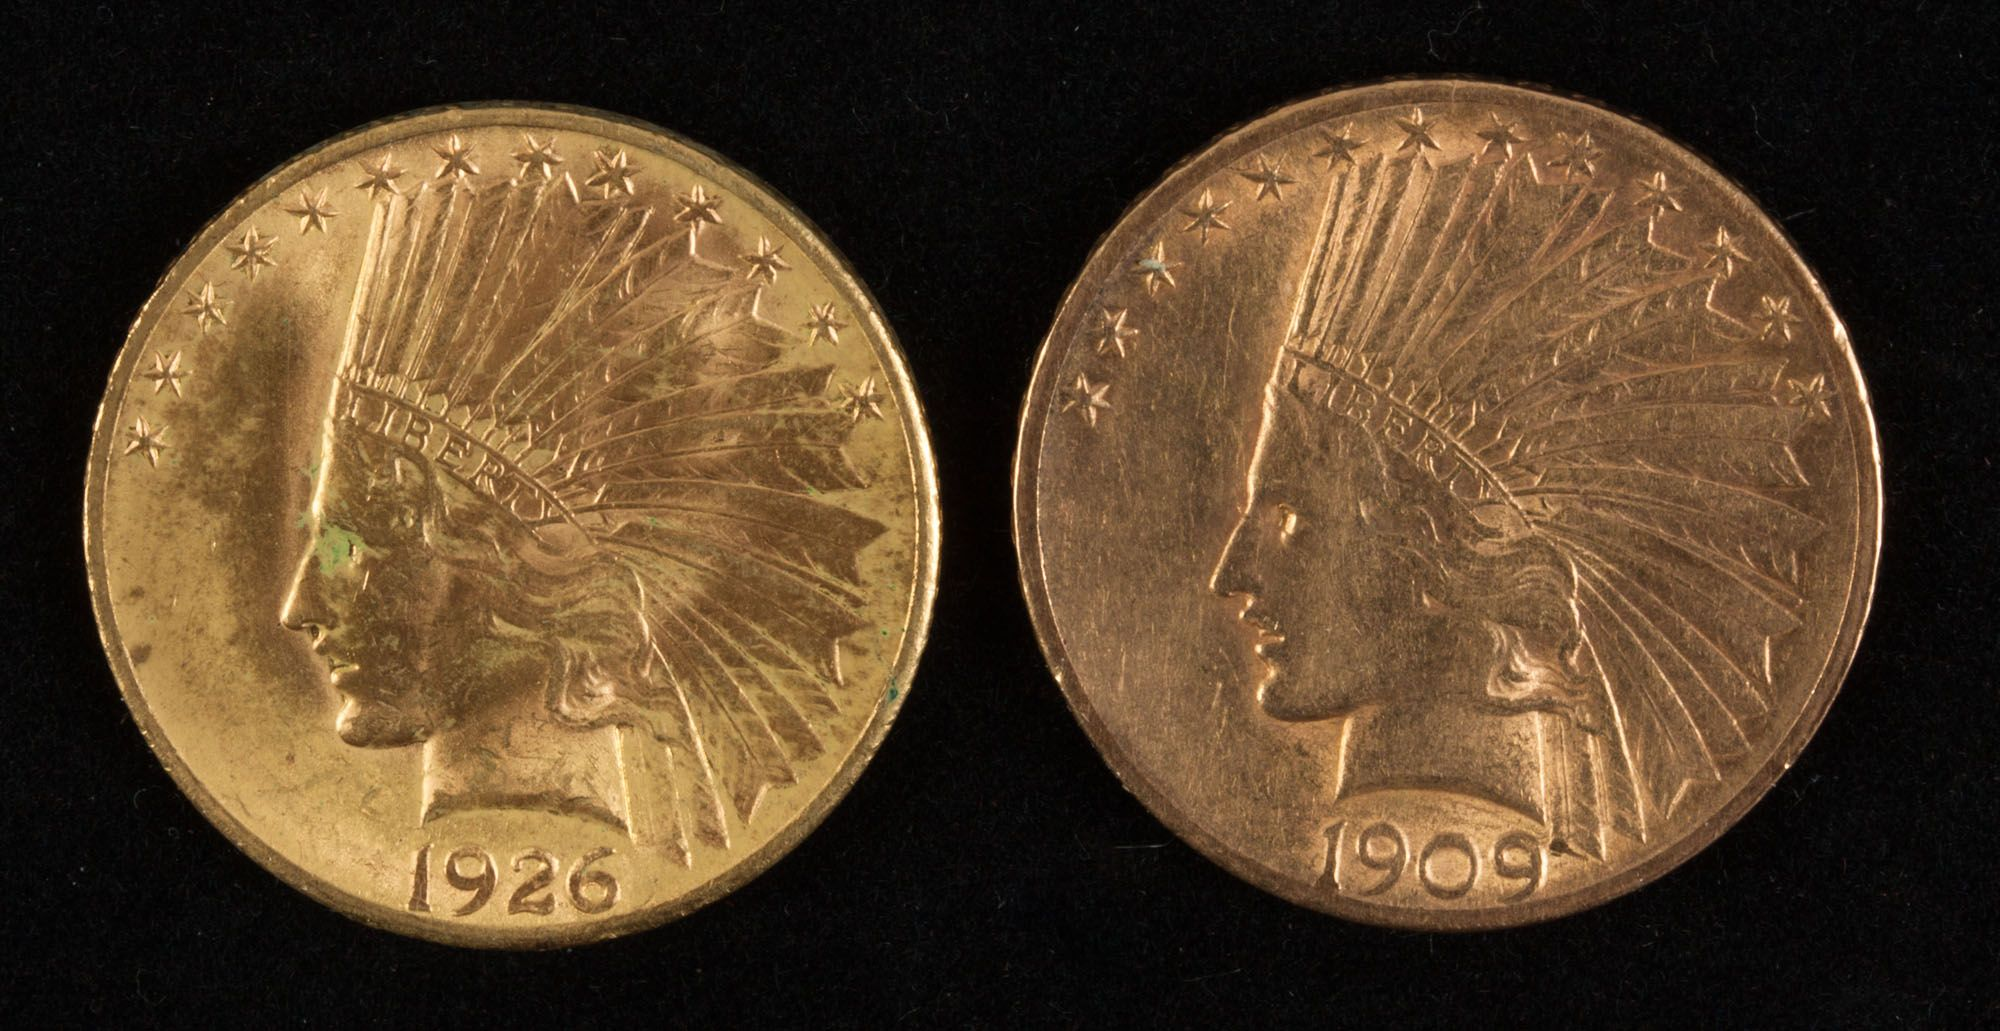 1906 1926 10 Dollar Indian Head Gold Coins Bullion Bullioncoins Coins Coincollecting Preciousmetals Bullioncoin Collect In 2020 Gold Coins Coins Greek Coins